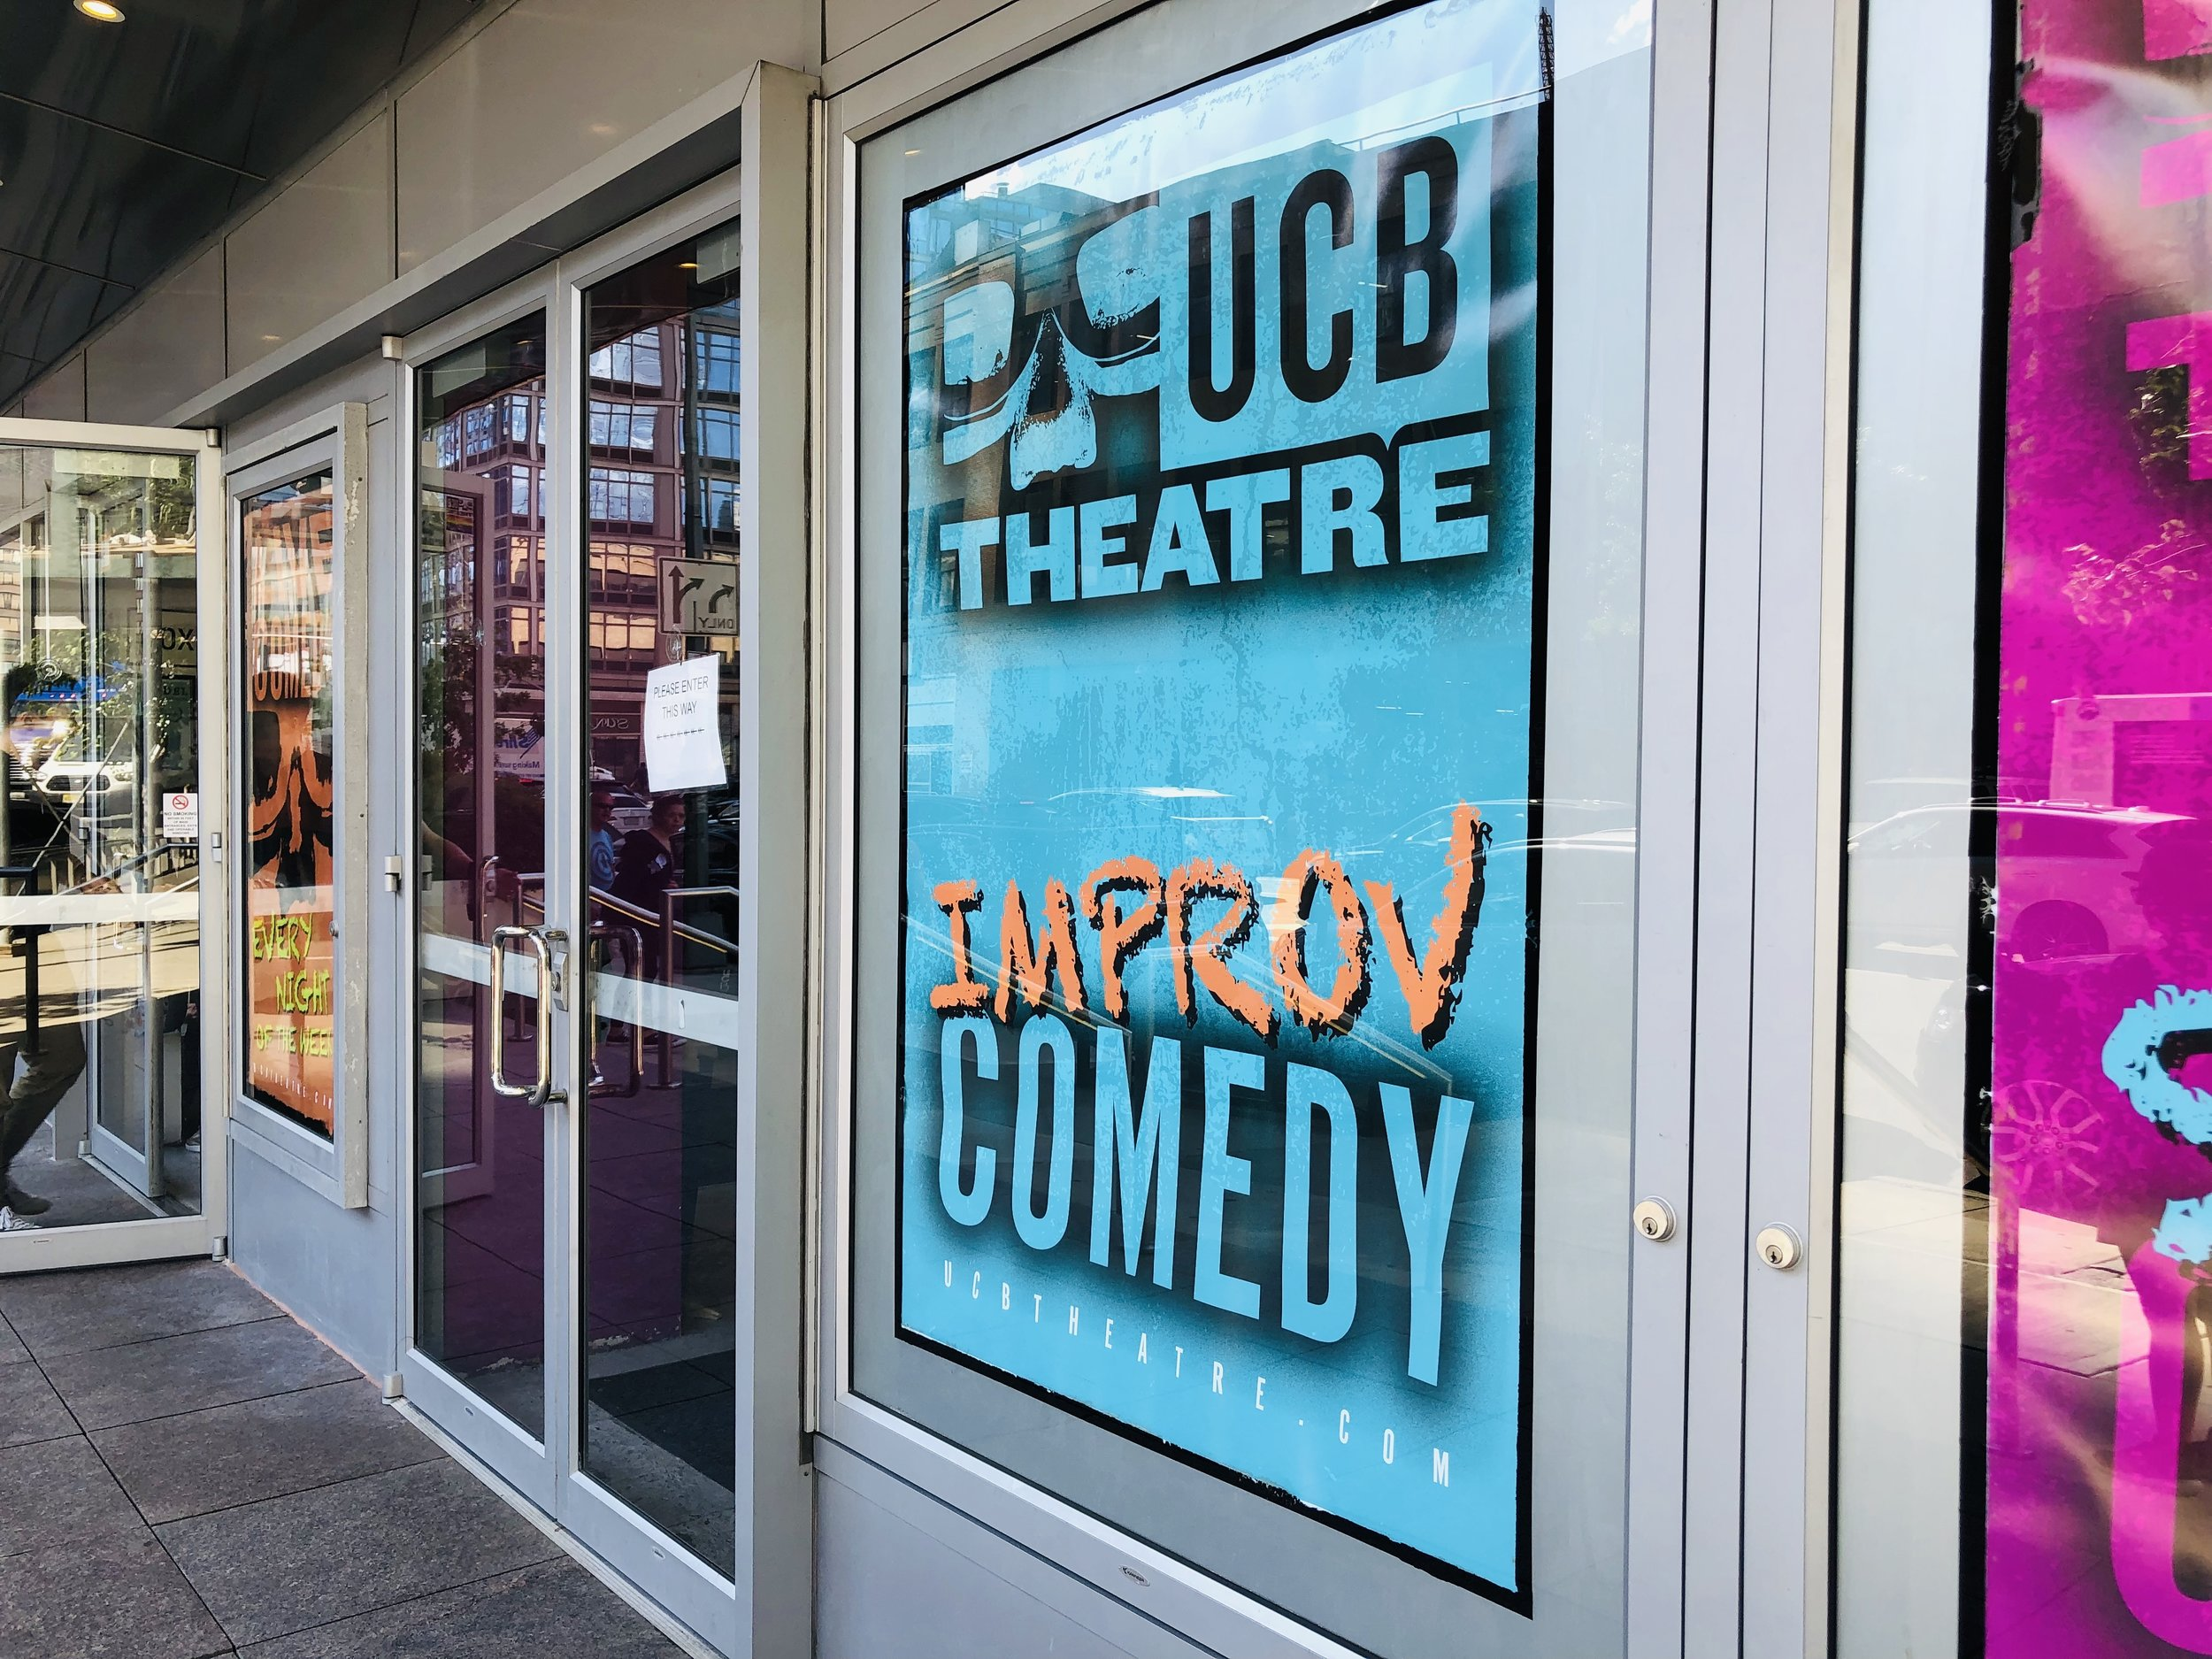 Photo of UCB in New York City, taken by Samantha McHenry in 2019.